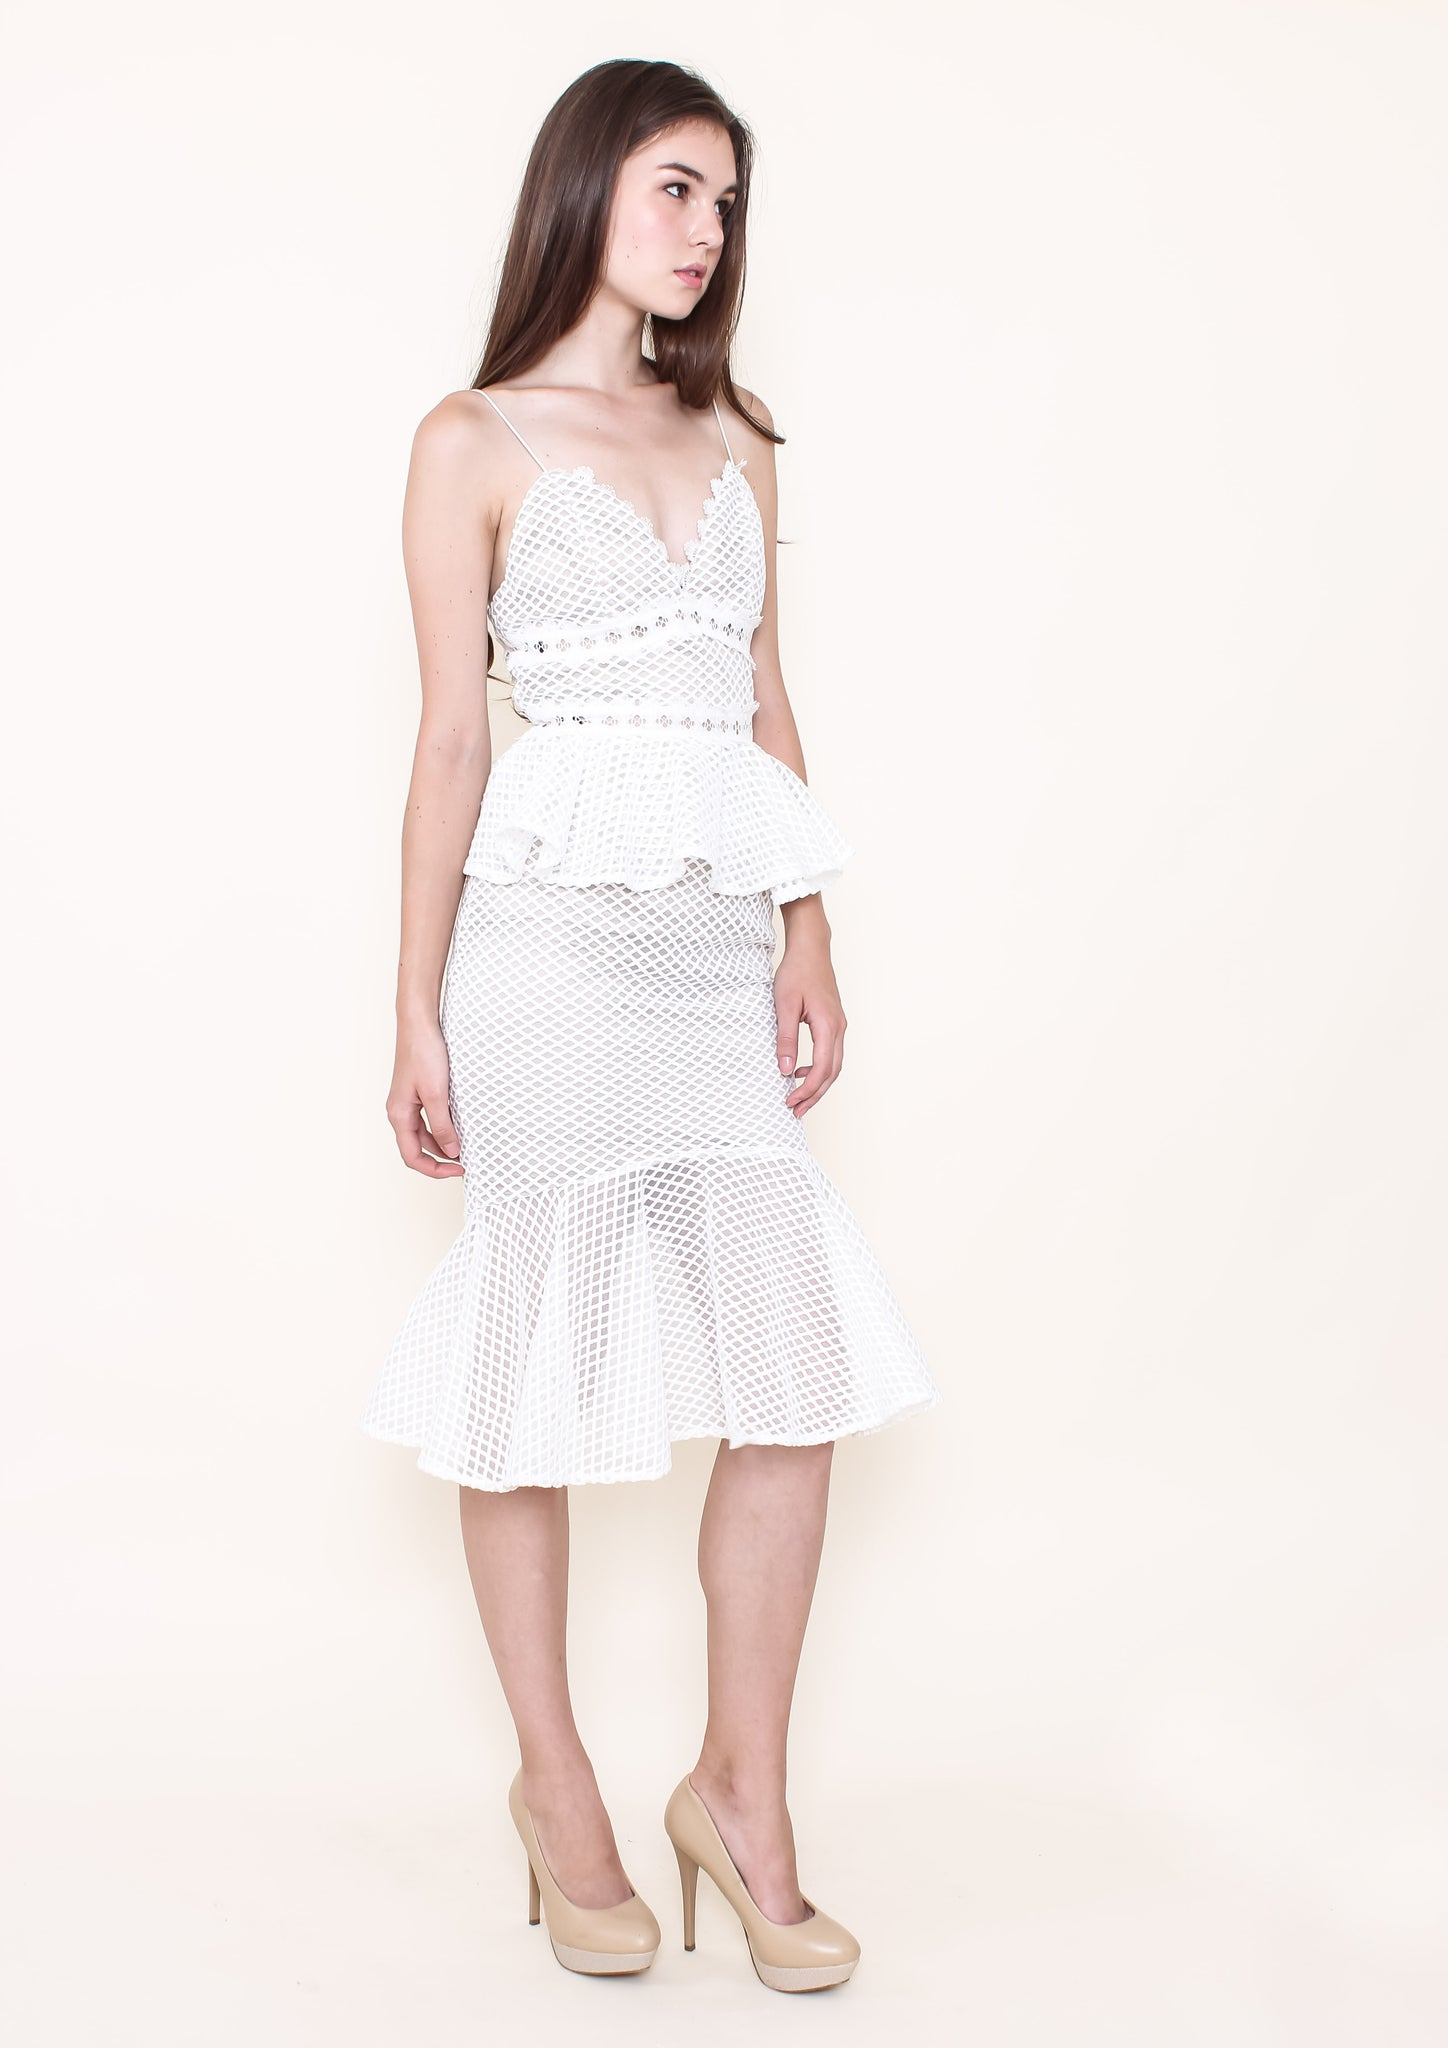 Ambition Dress (White) - Moxie